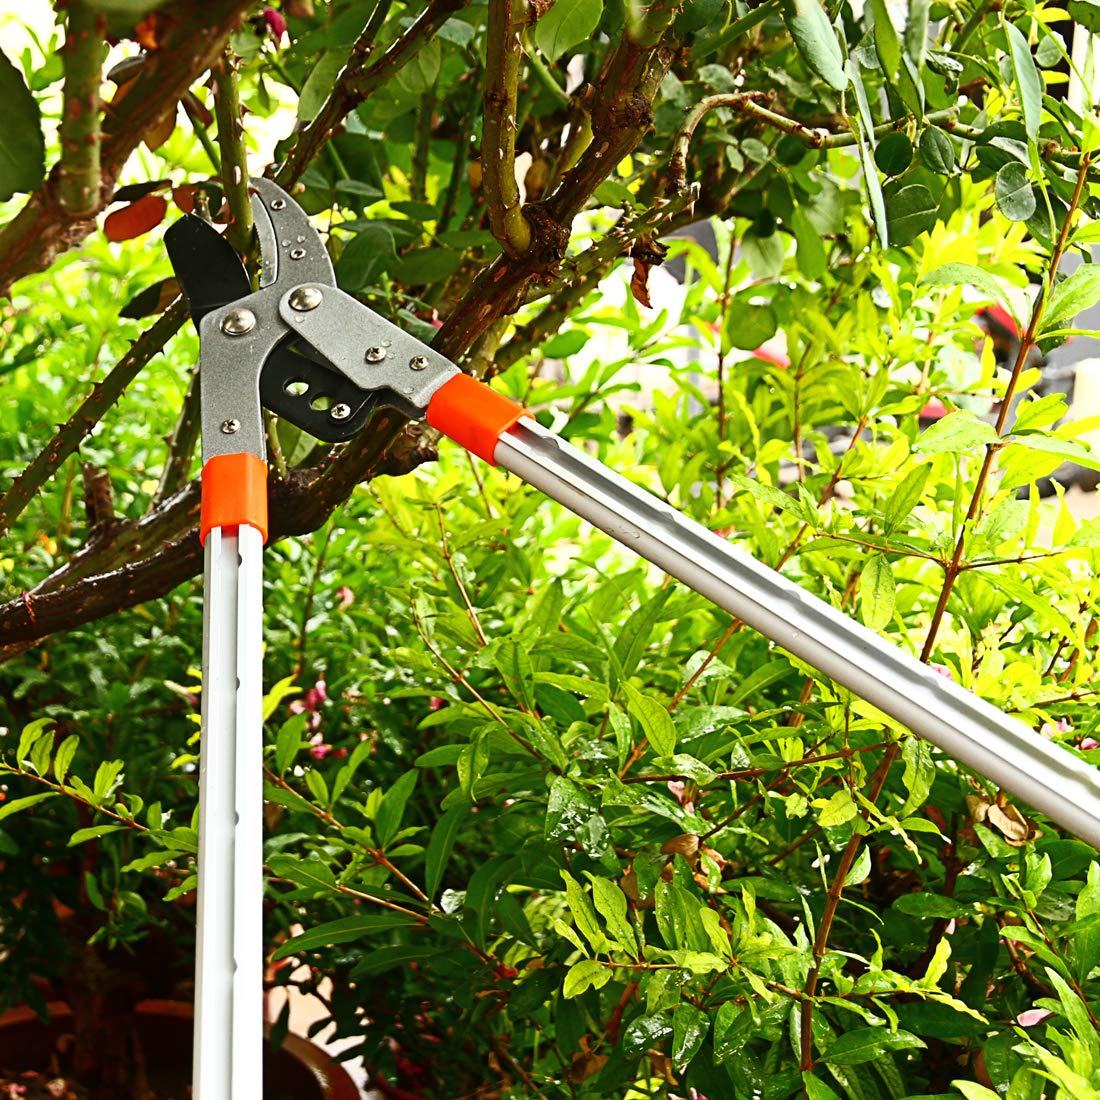 Pruning Lopper T-MAI 28~40 Extendable Anvil Lopper Pruning Shears Up to 1.9 Cutting Capacity Tree Pruner with Aluminium Lightweight Handle Branch Cutter Garden Pruning for Tree Trimmer